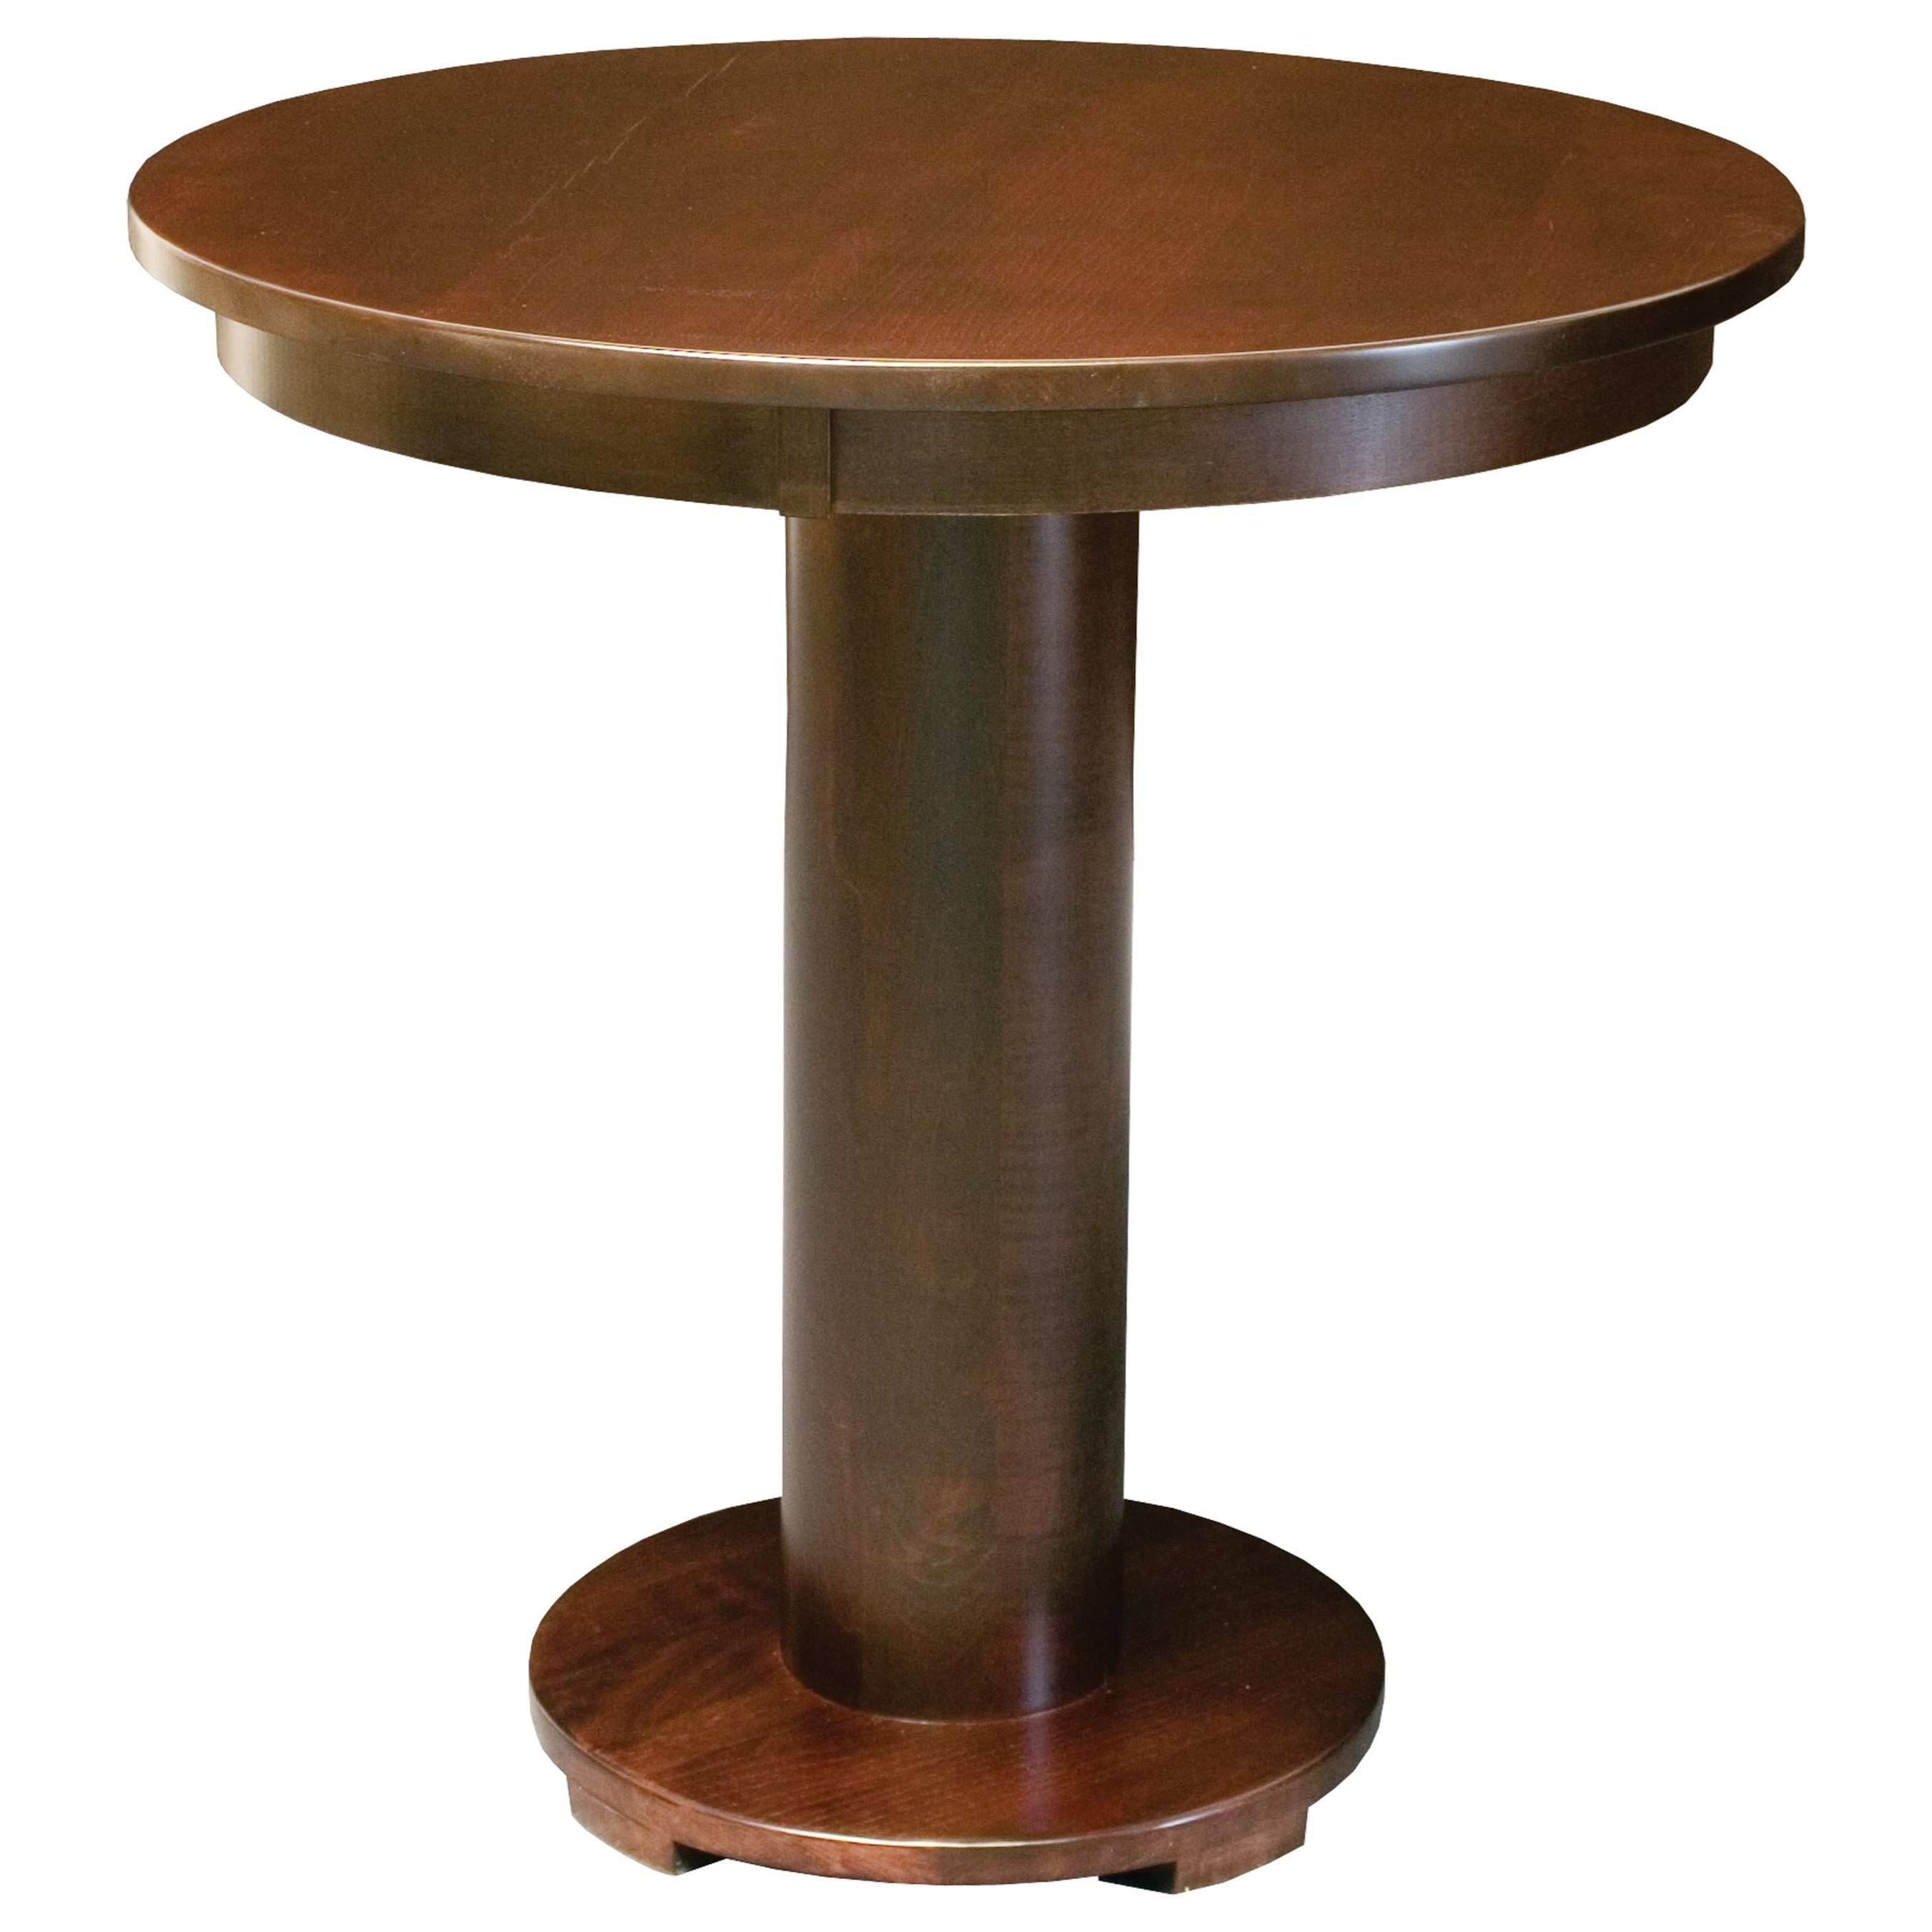 "Customizable 36"" Solid Wood Pedestal Table"